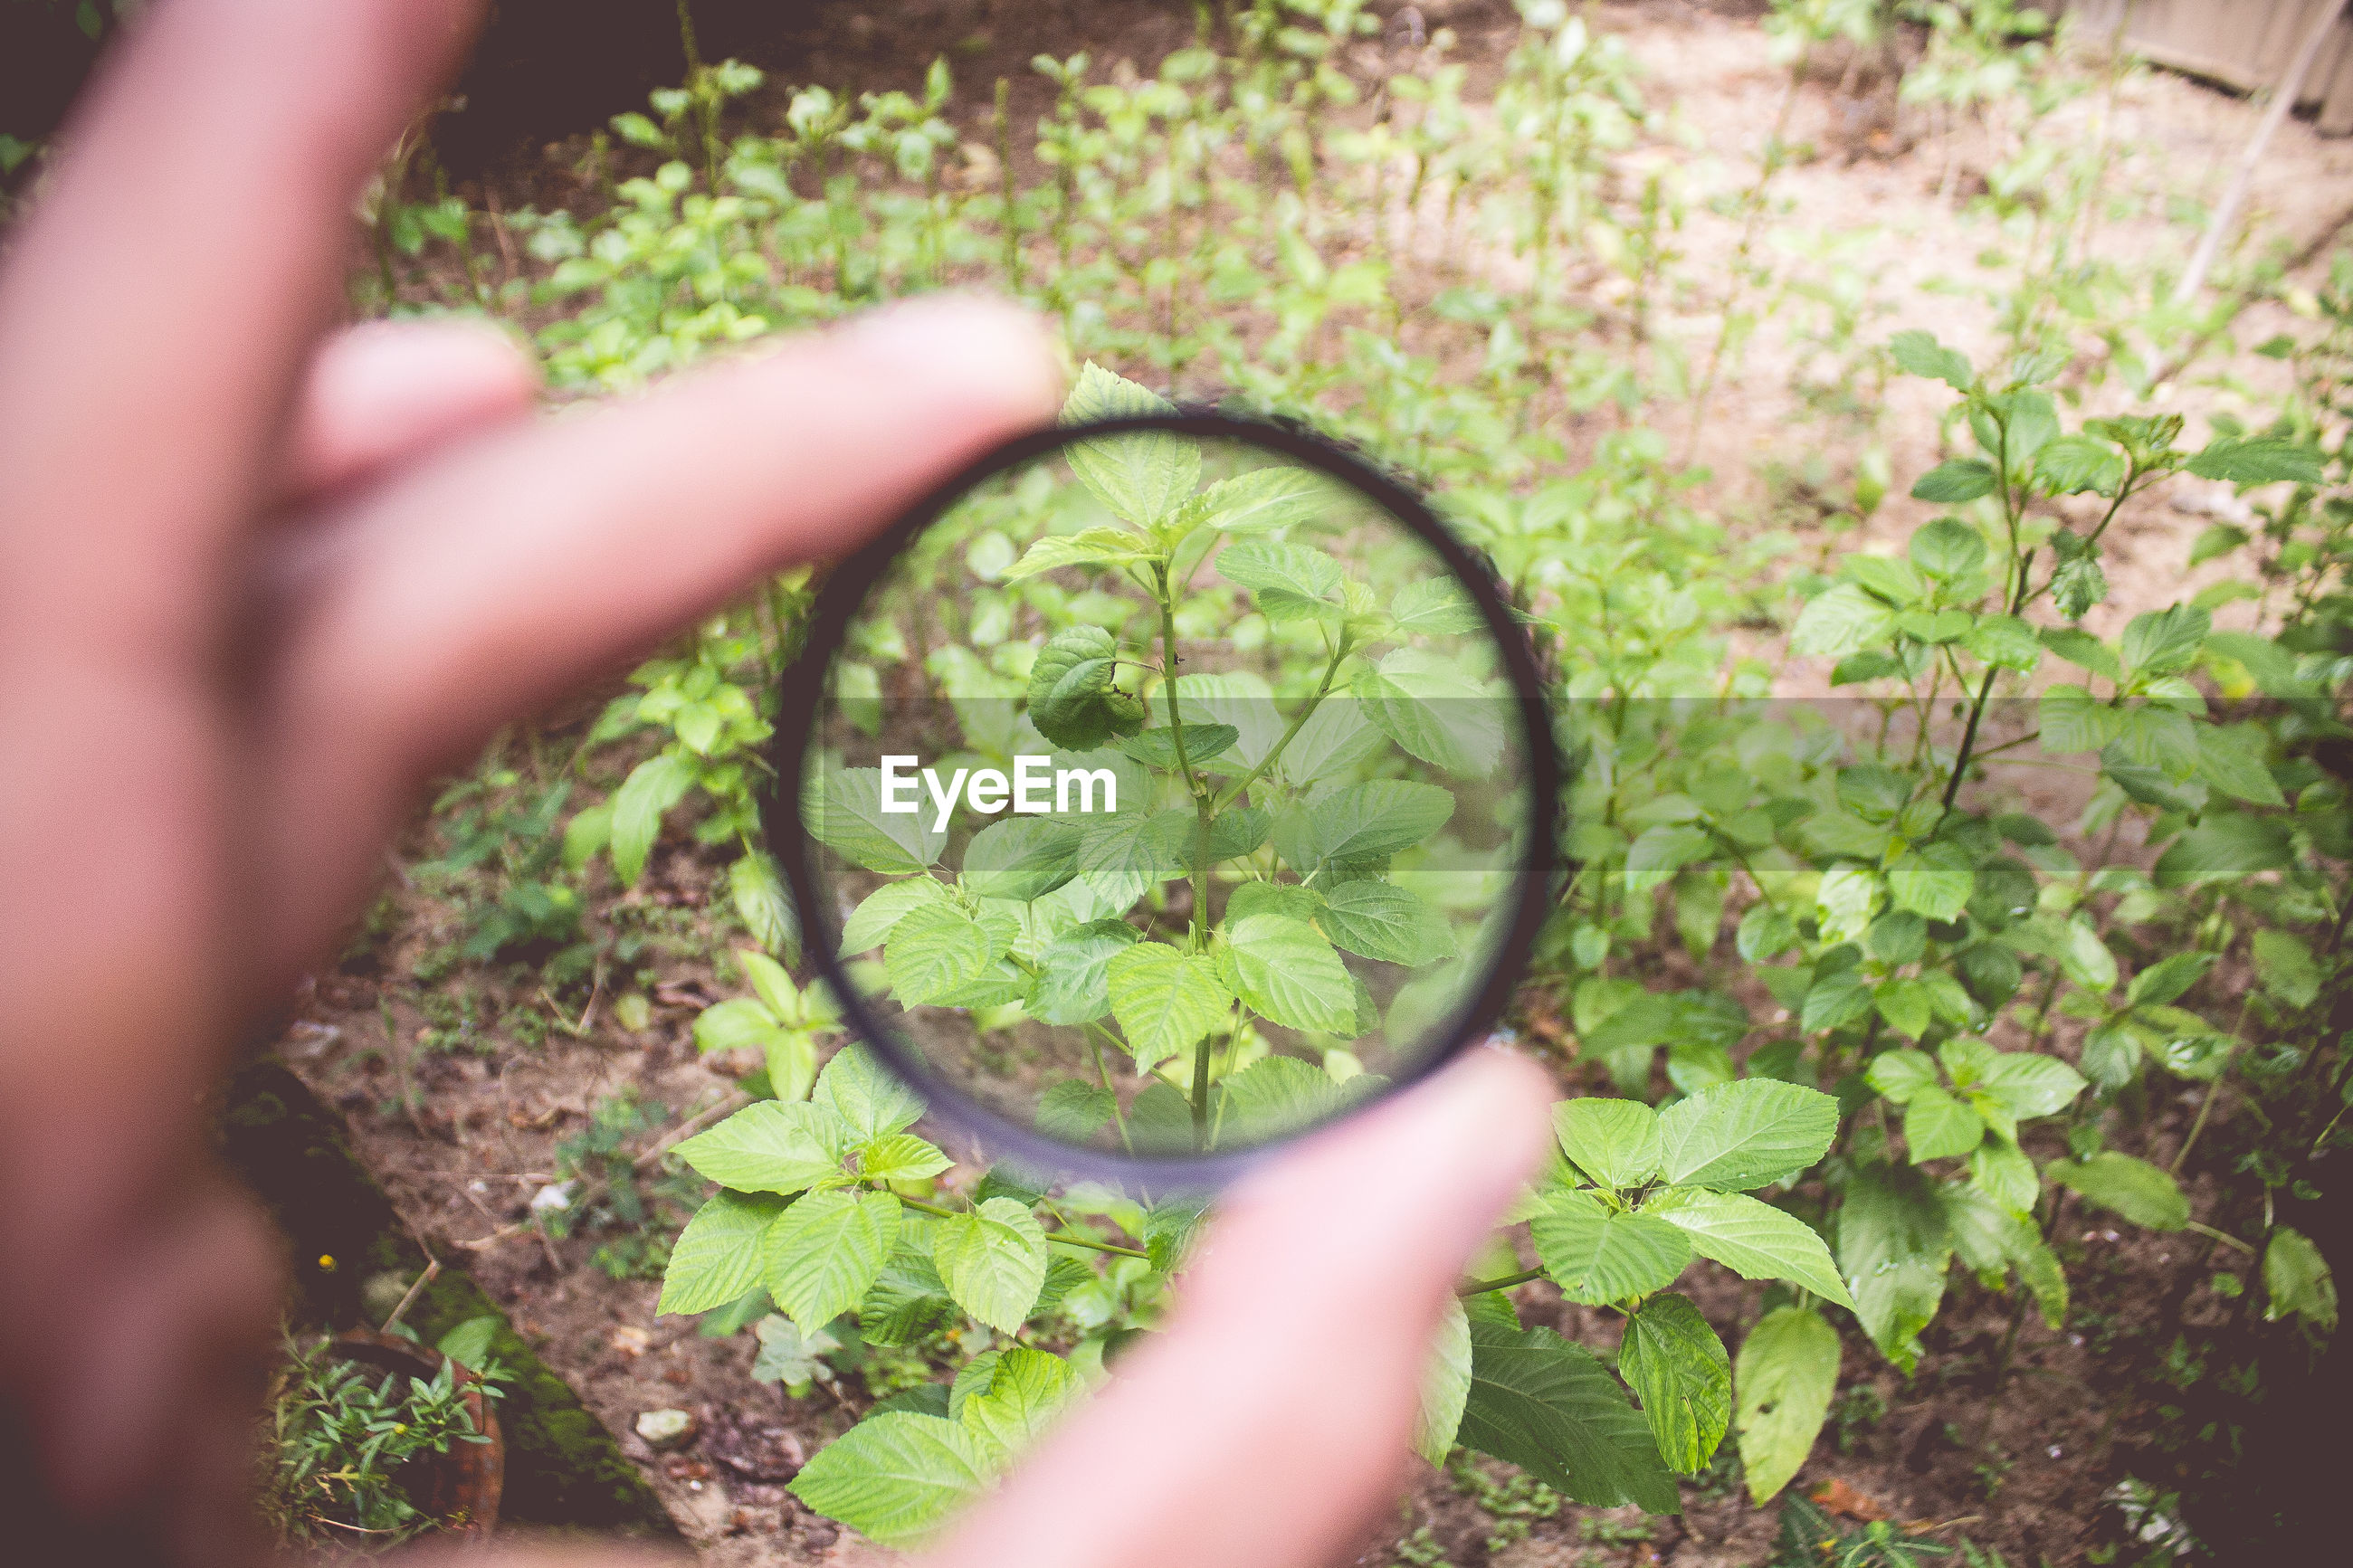 Cropped image of person holding magnifying glass against plant